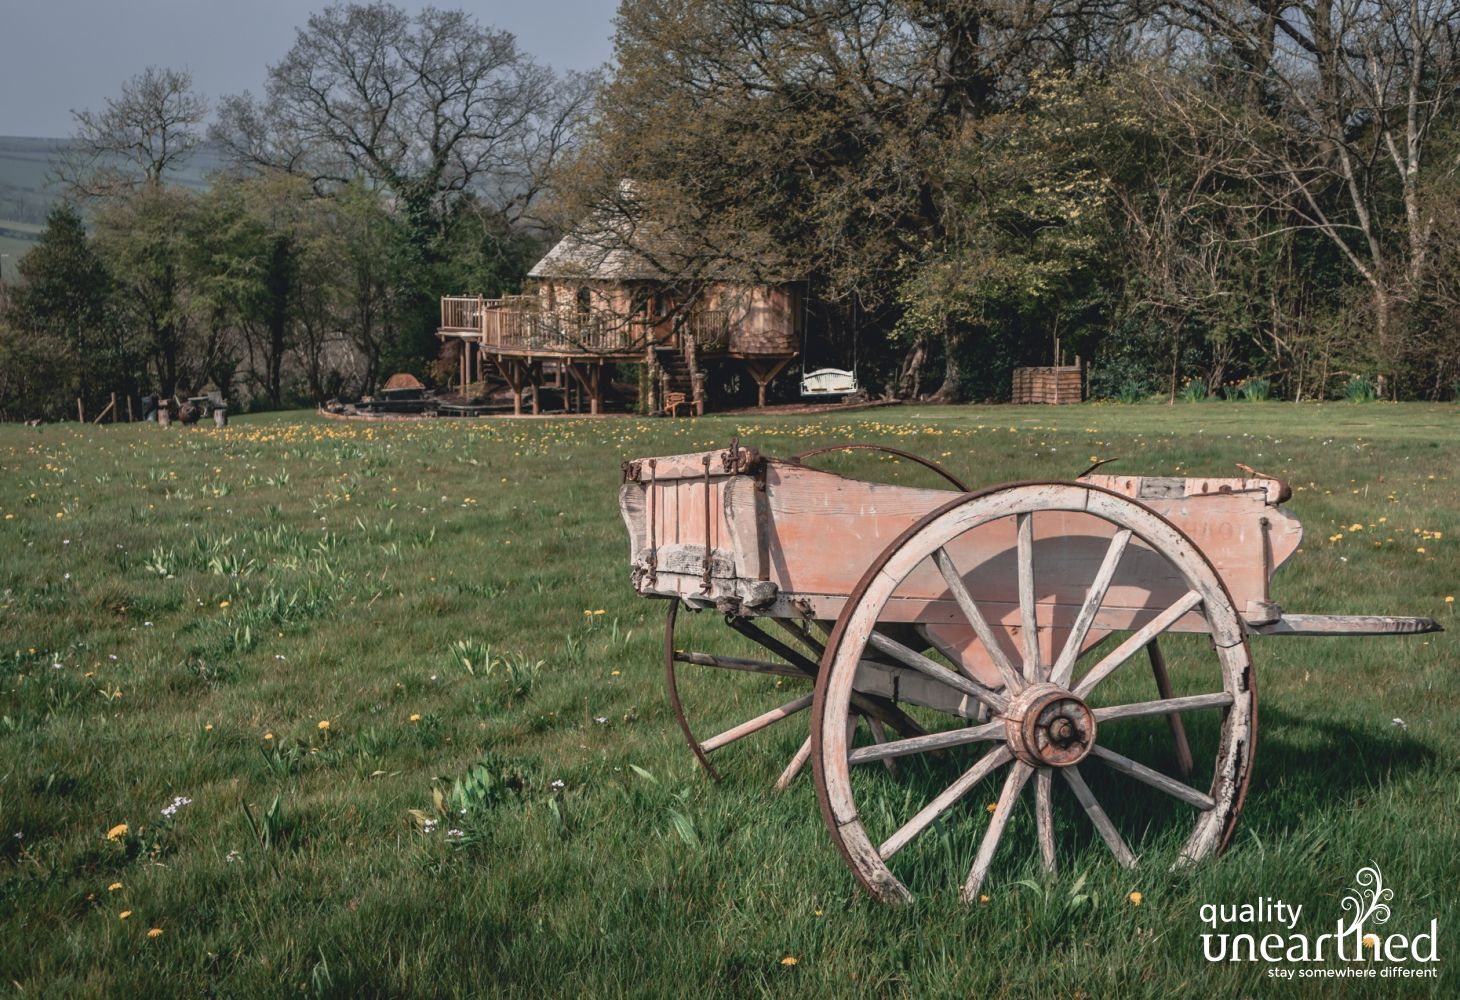 An old horse drawn cart sits as decoration on a grassy hill with dandelions and daffodils with the Breacon Breacons and treehouse in the background